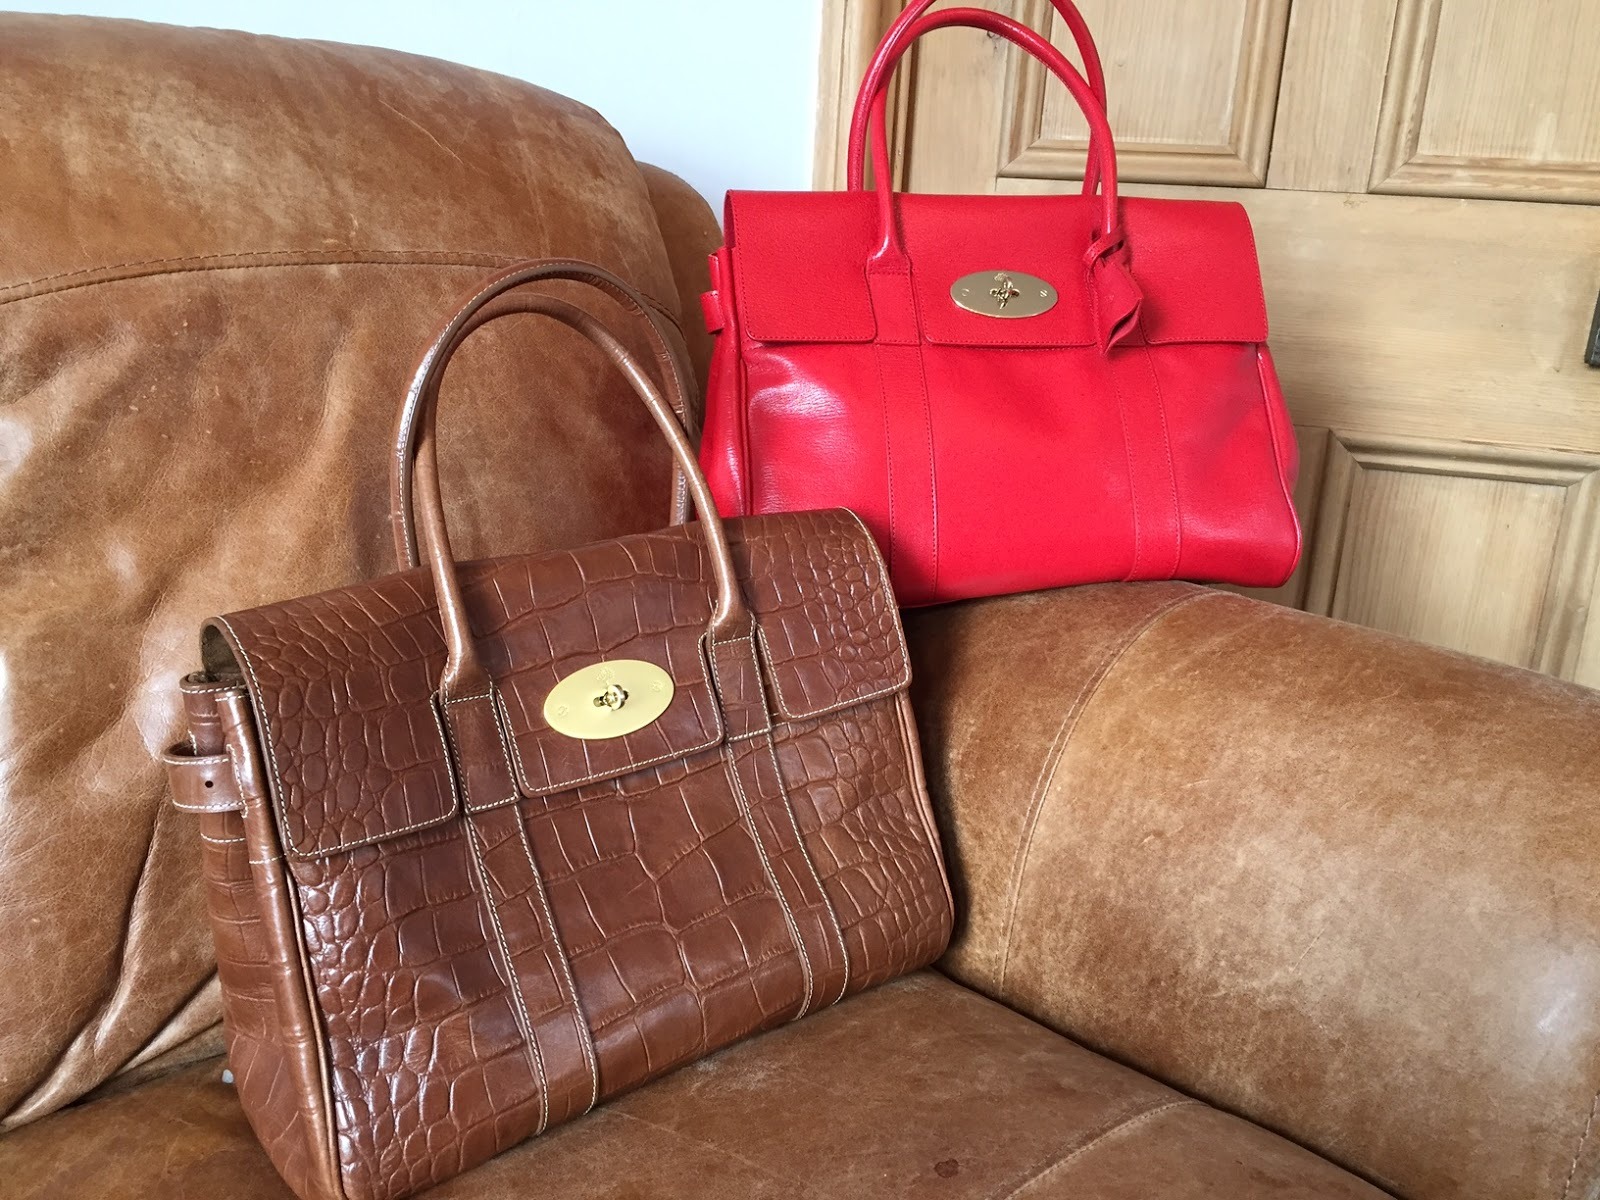 c4551ba696 new style womens bags women mulberry e9553 53b57  50% off mulberry  bayswater in red glossy goat and oak printed nvt 75e12 7c202